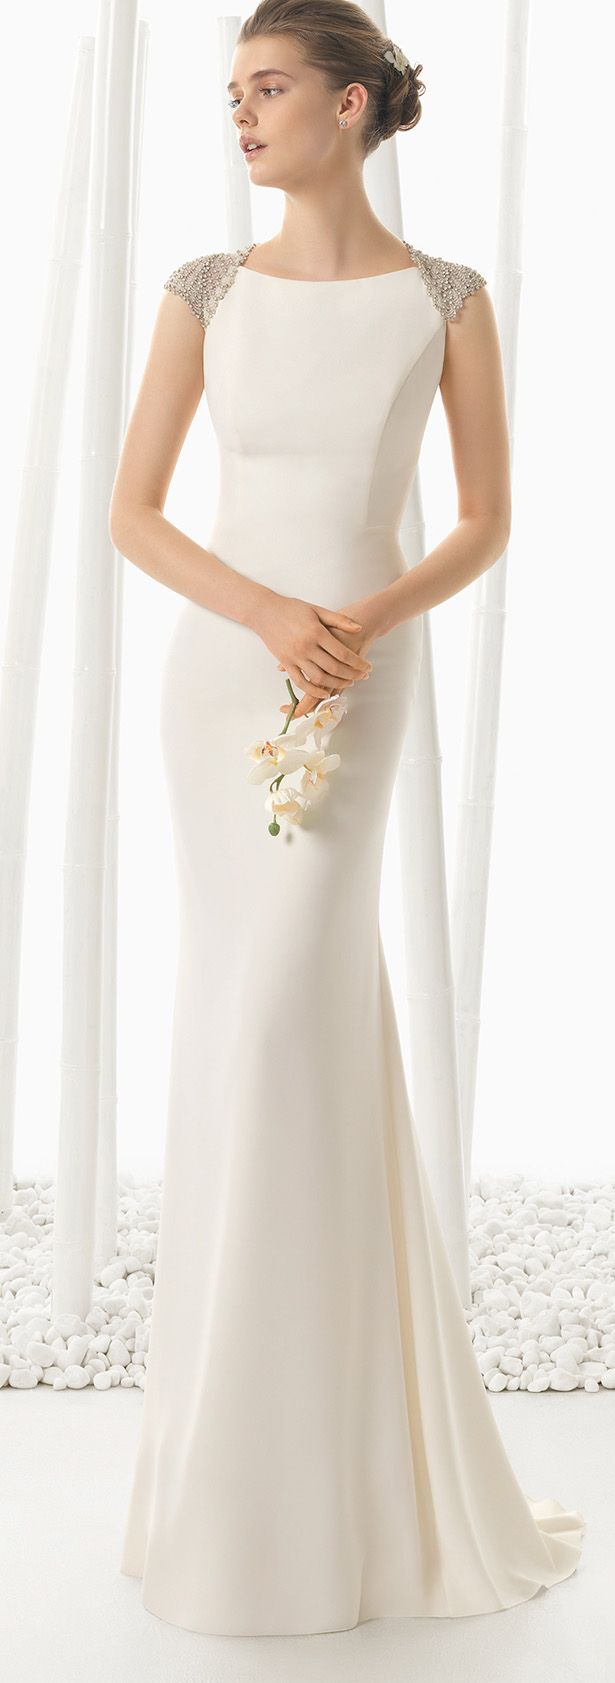 Best 25 Plain wedding dress ideas only on Pinterest Bateau